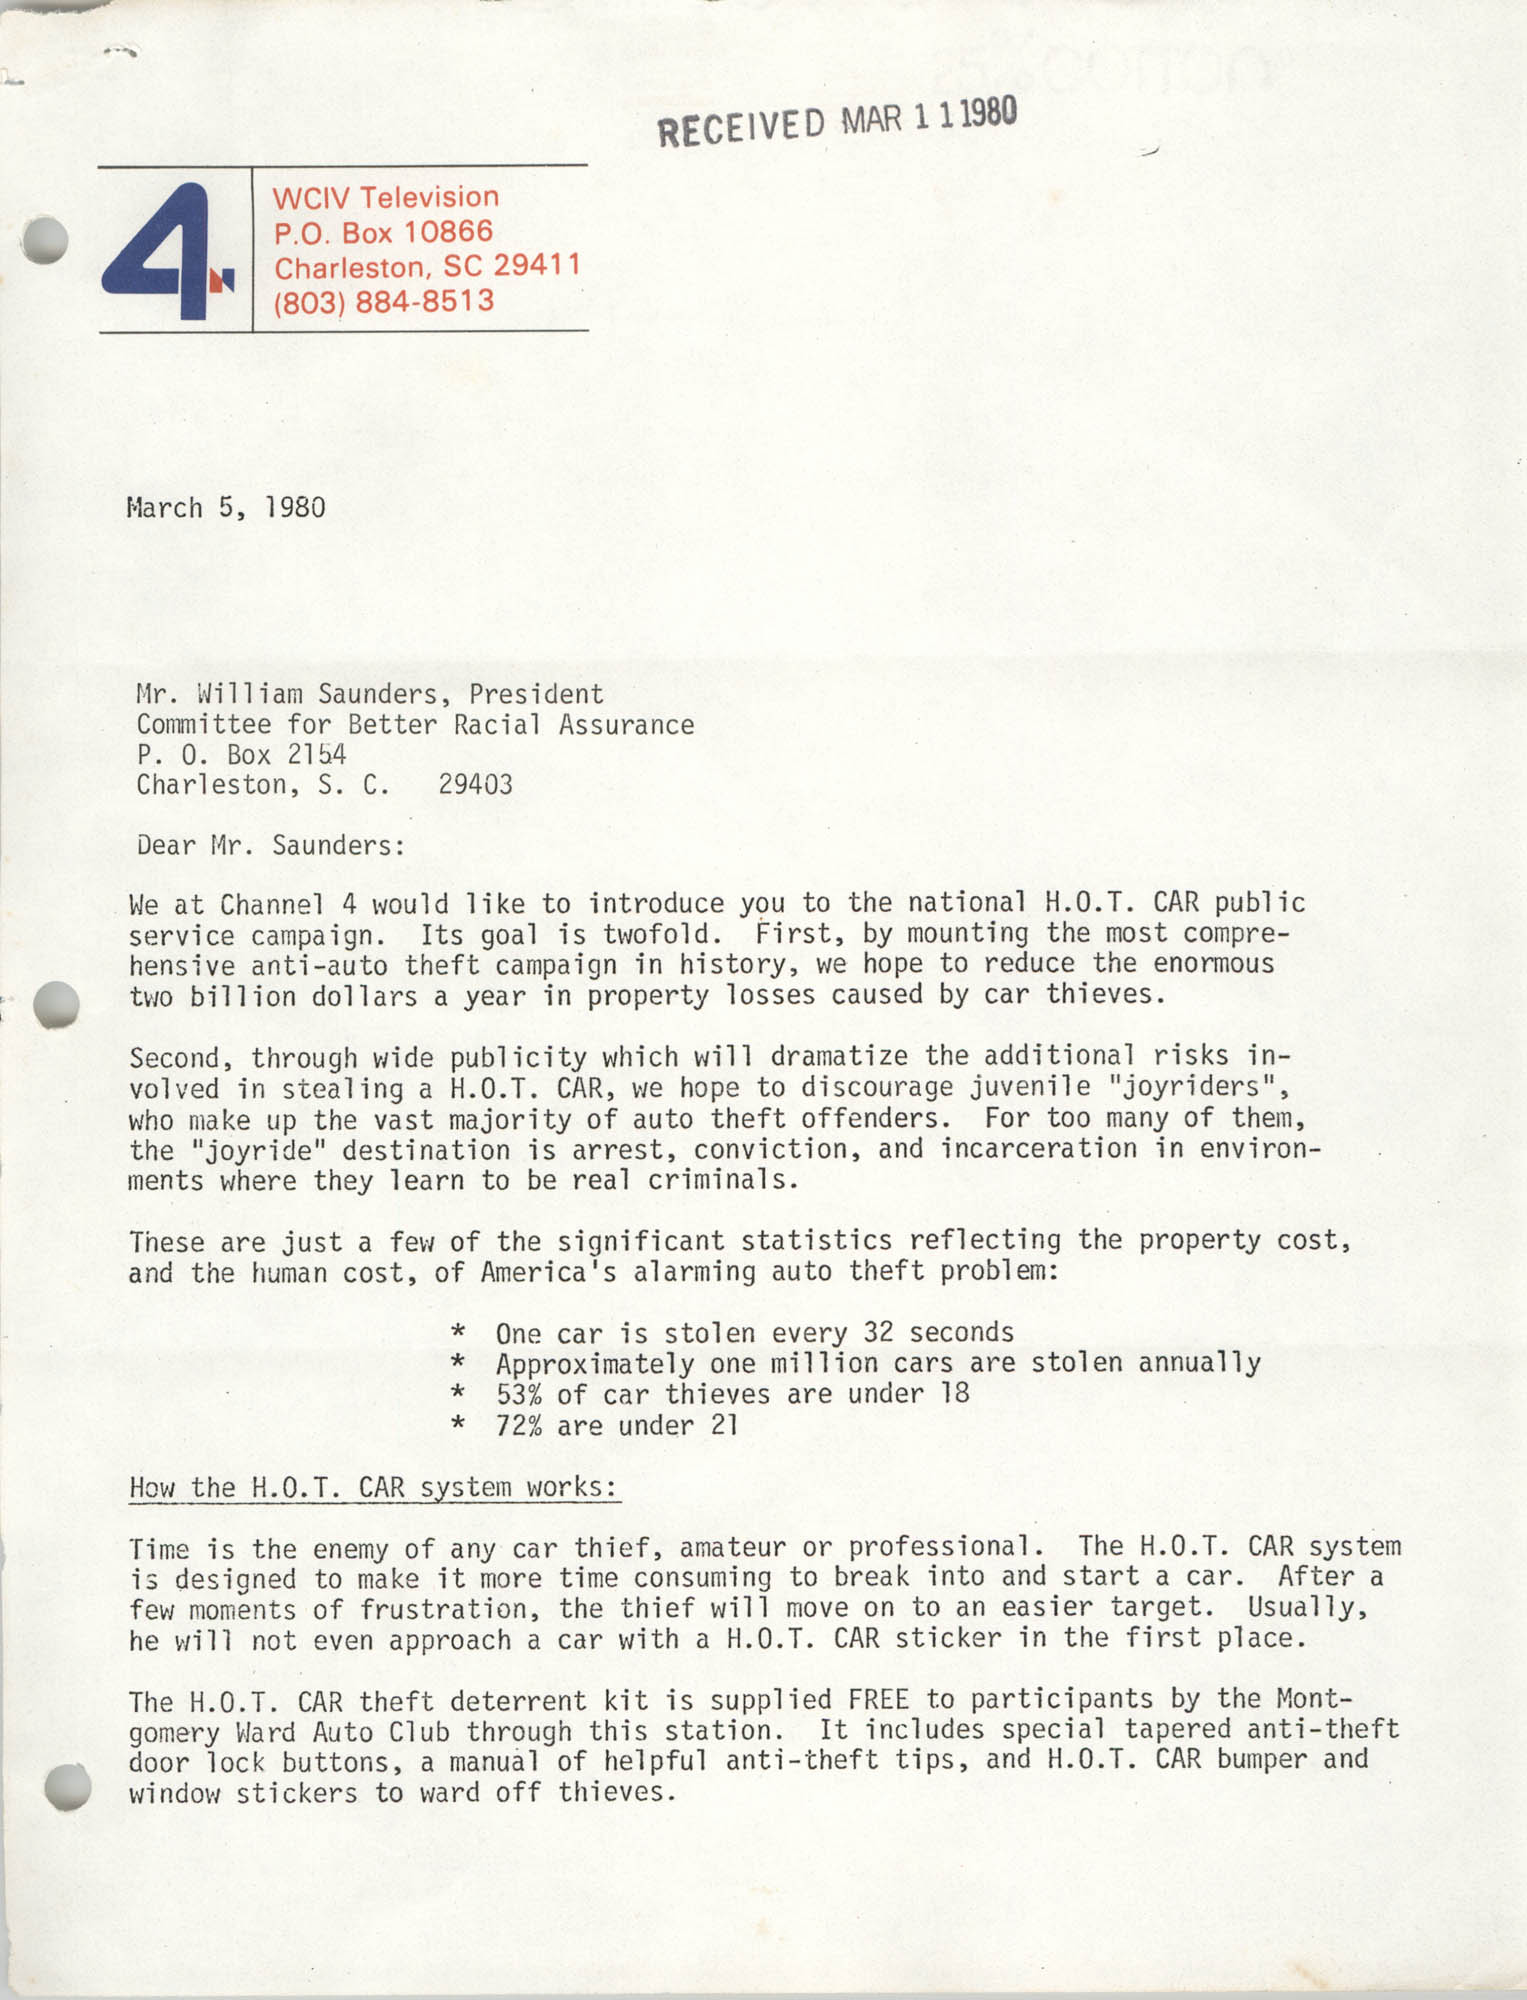 Letter from William E. Lucas and Celia Shaw to William Saunders, March 5, 1980